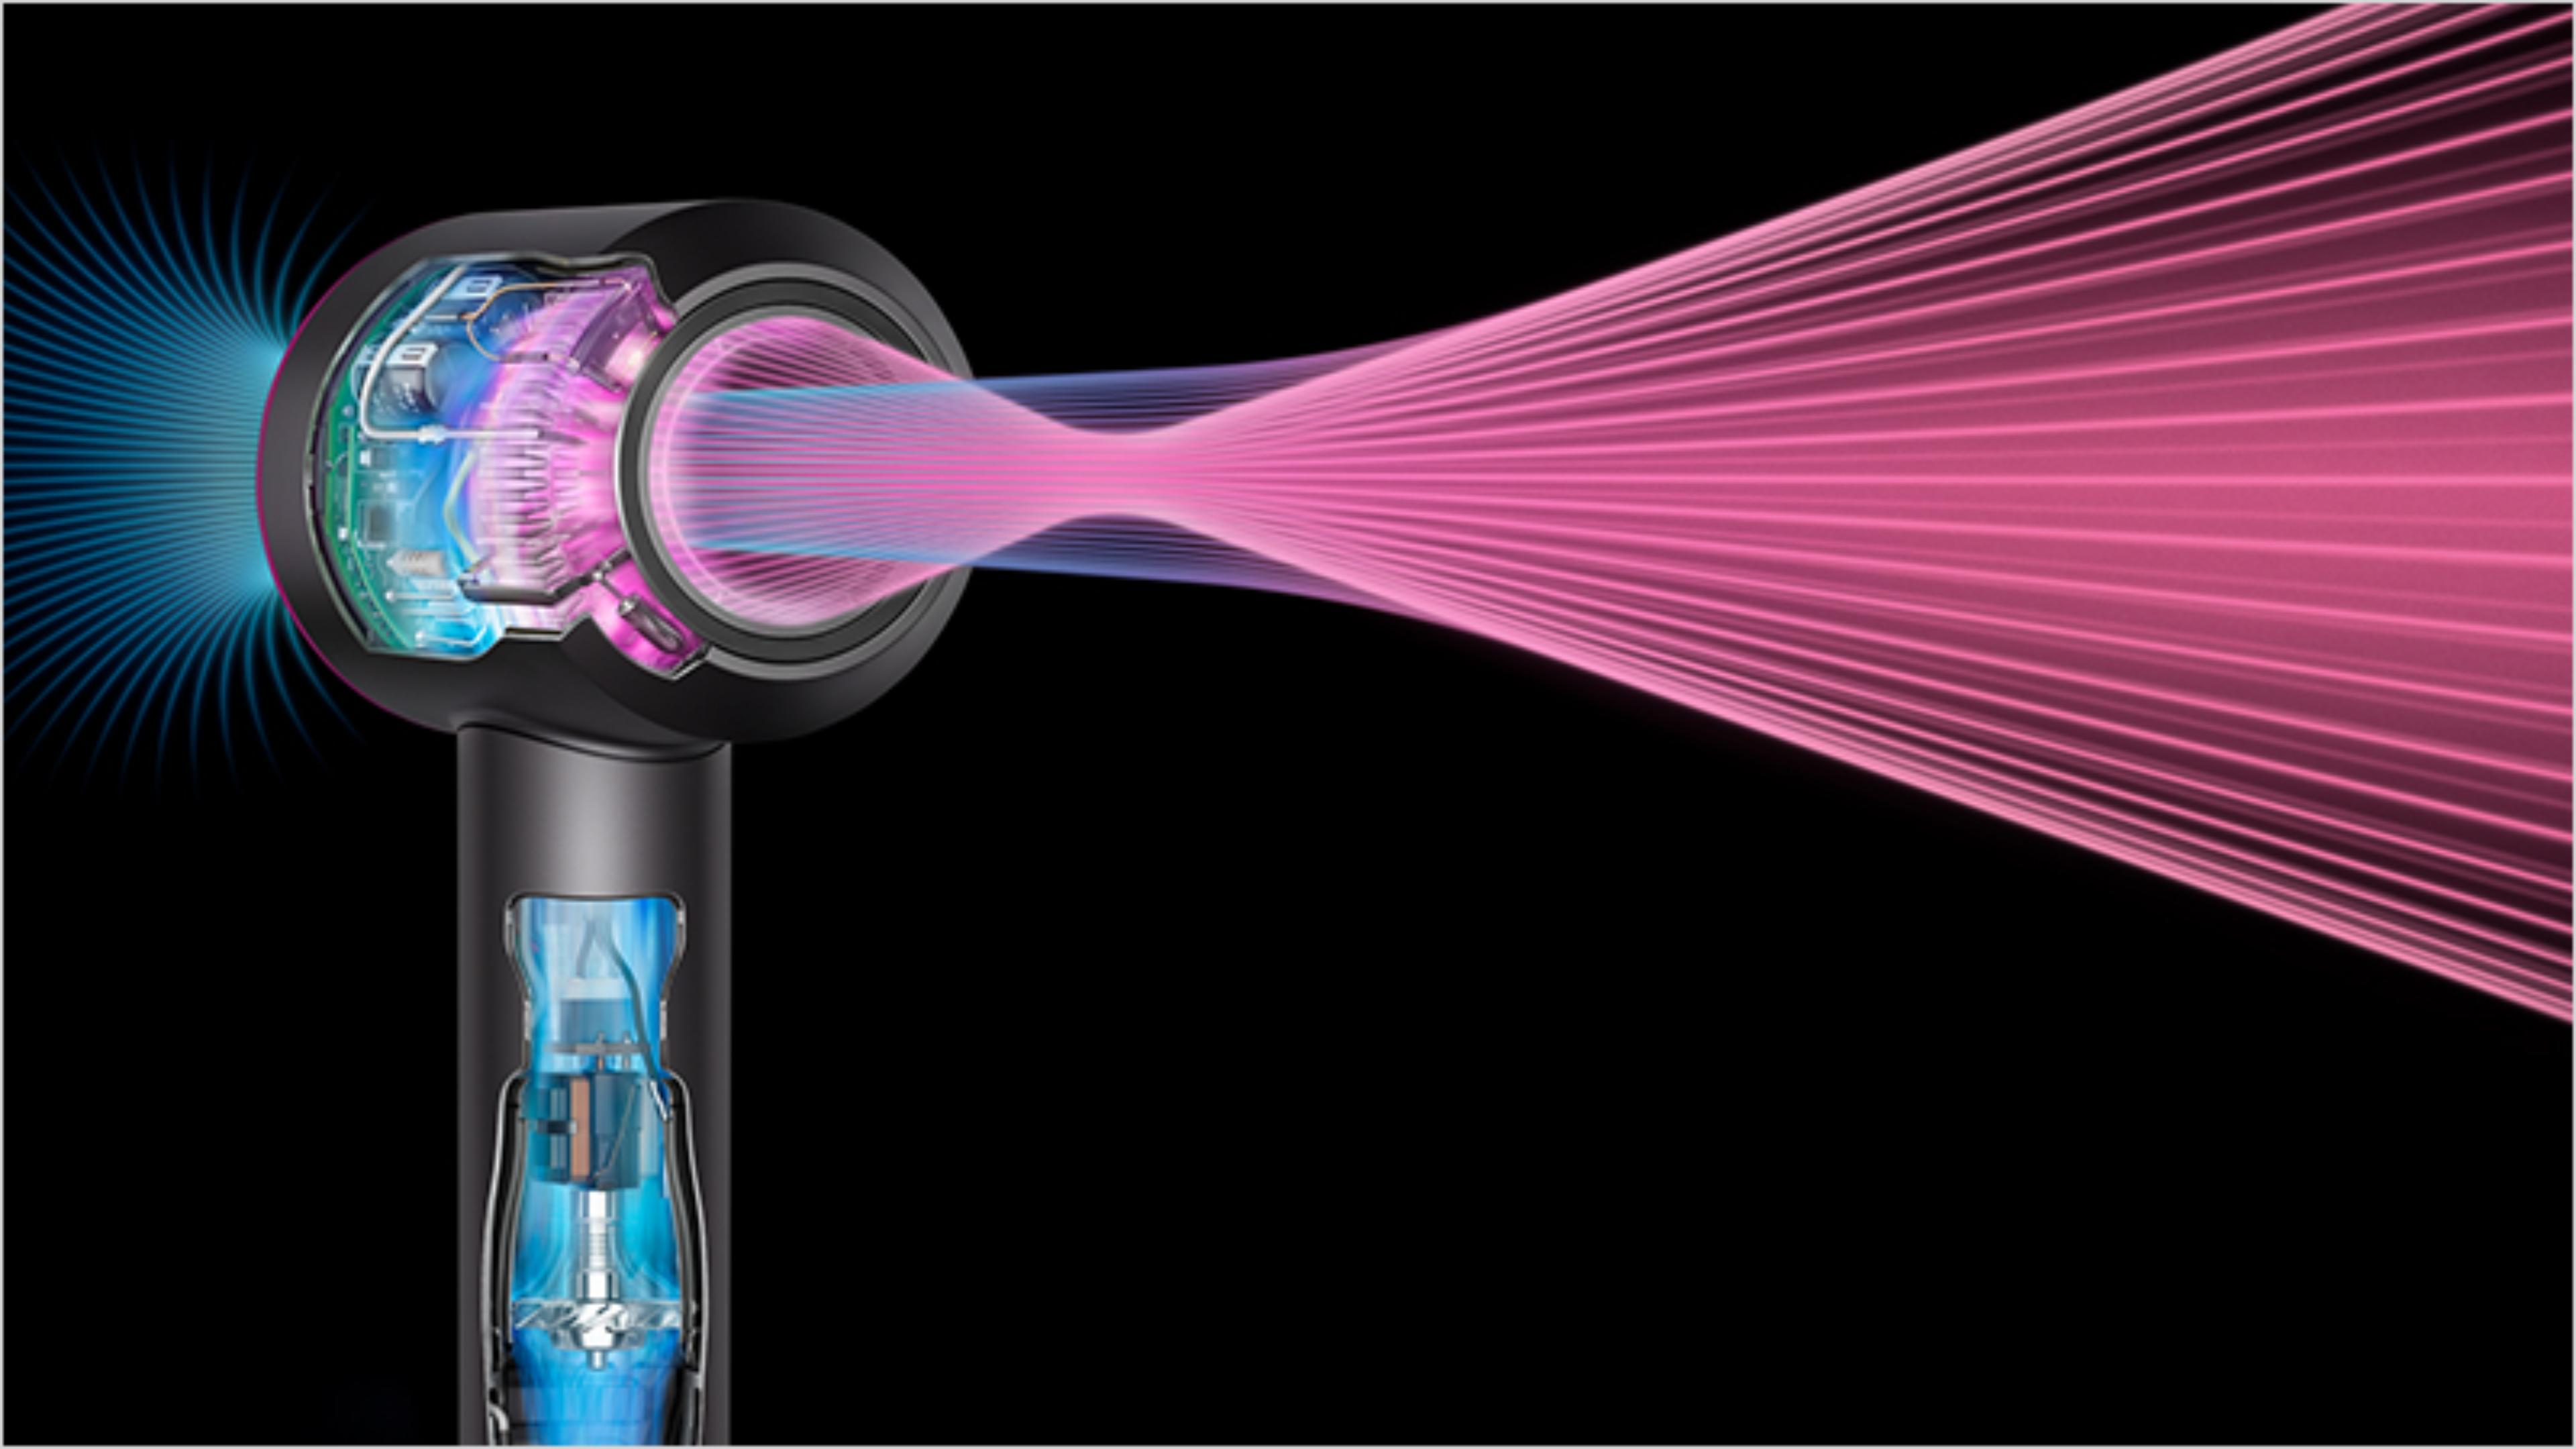 The Dyson digital motor V9